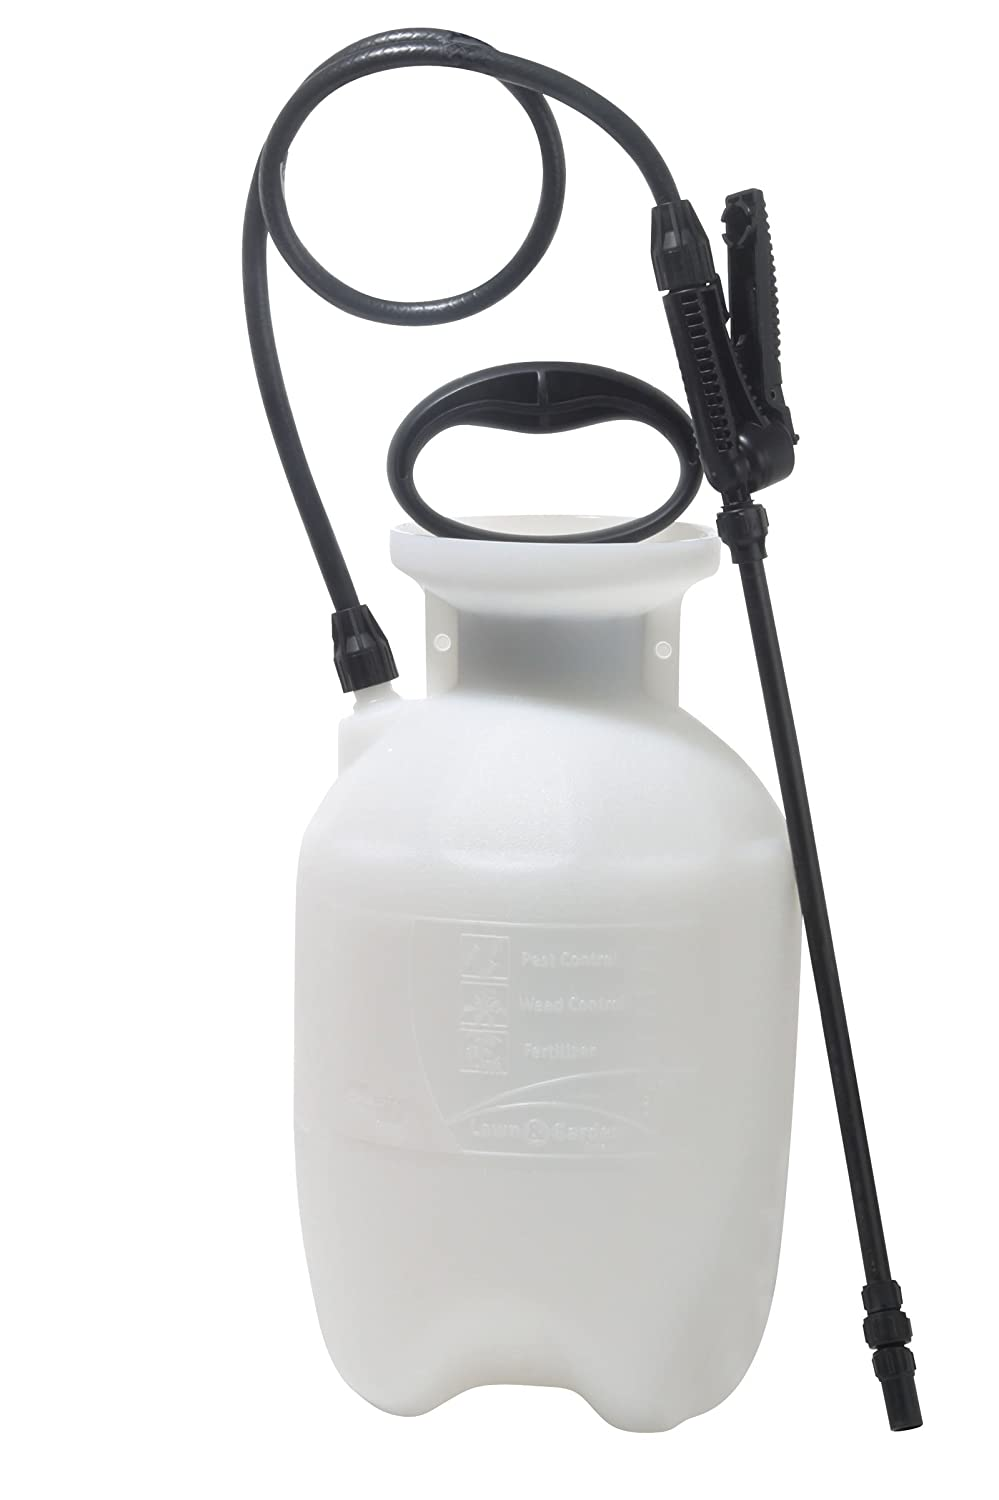 Best Pump sprayer